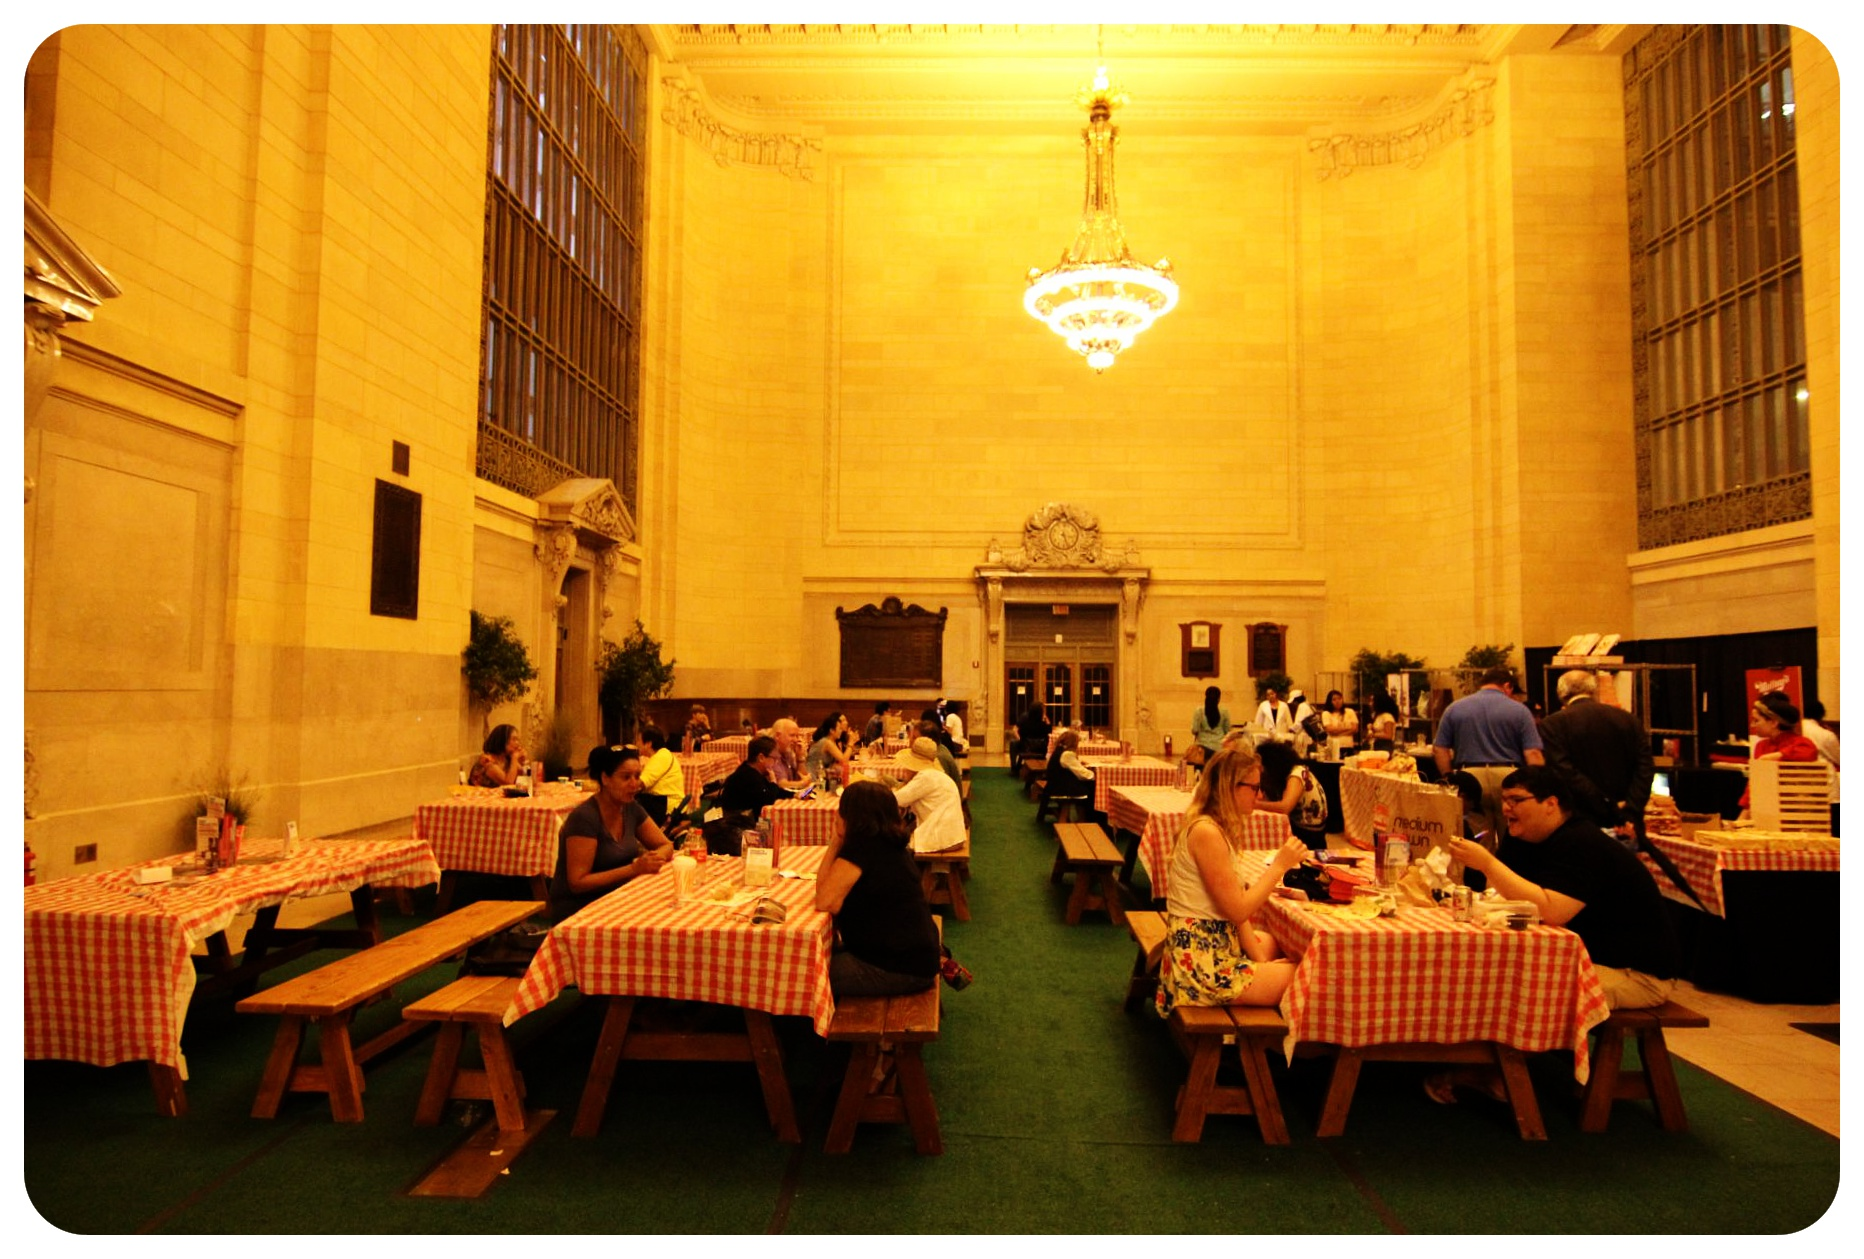 grand central picnic tables